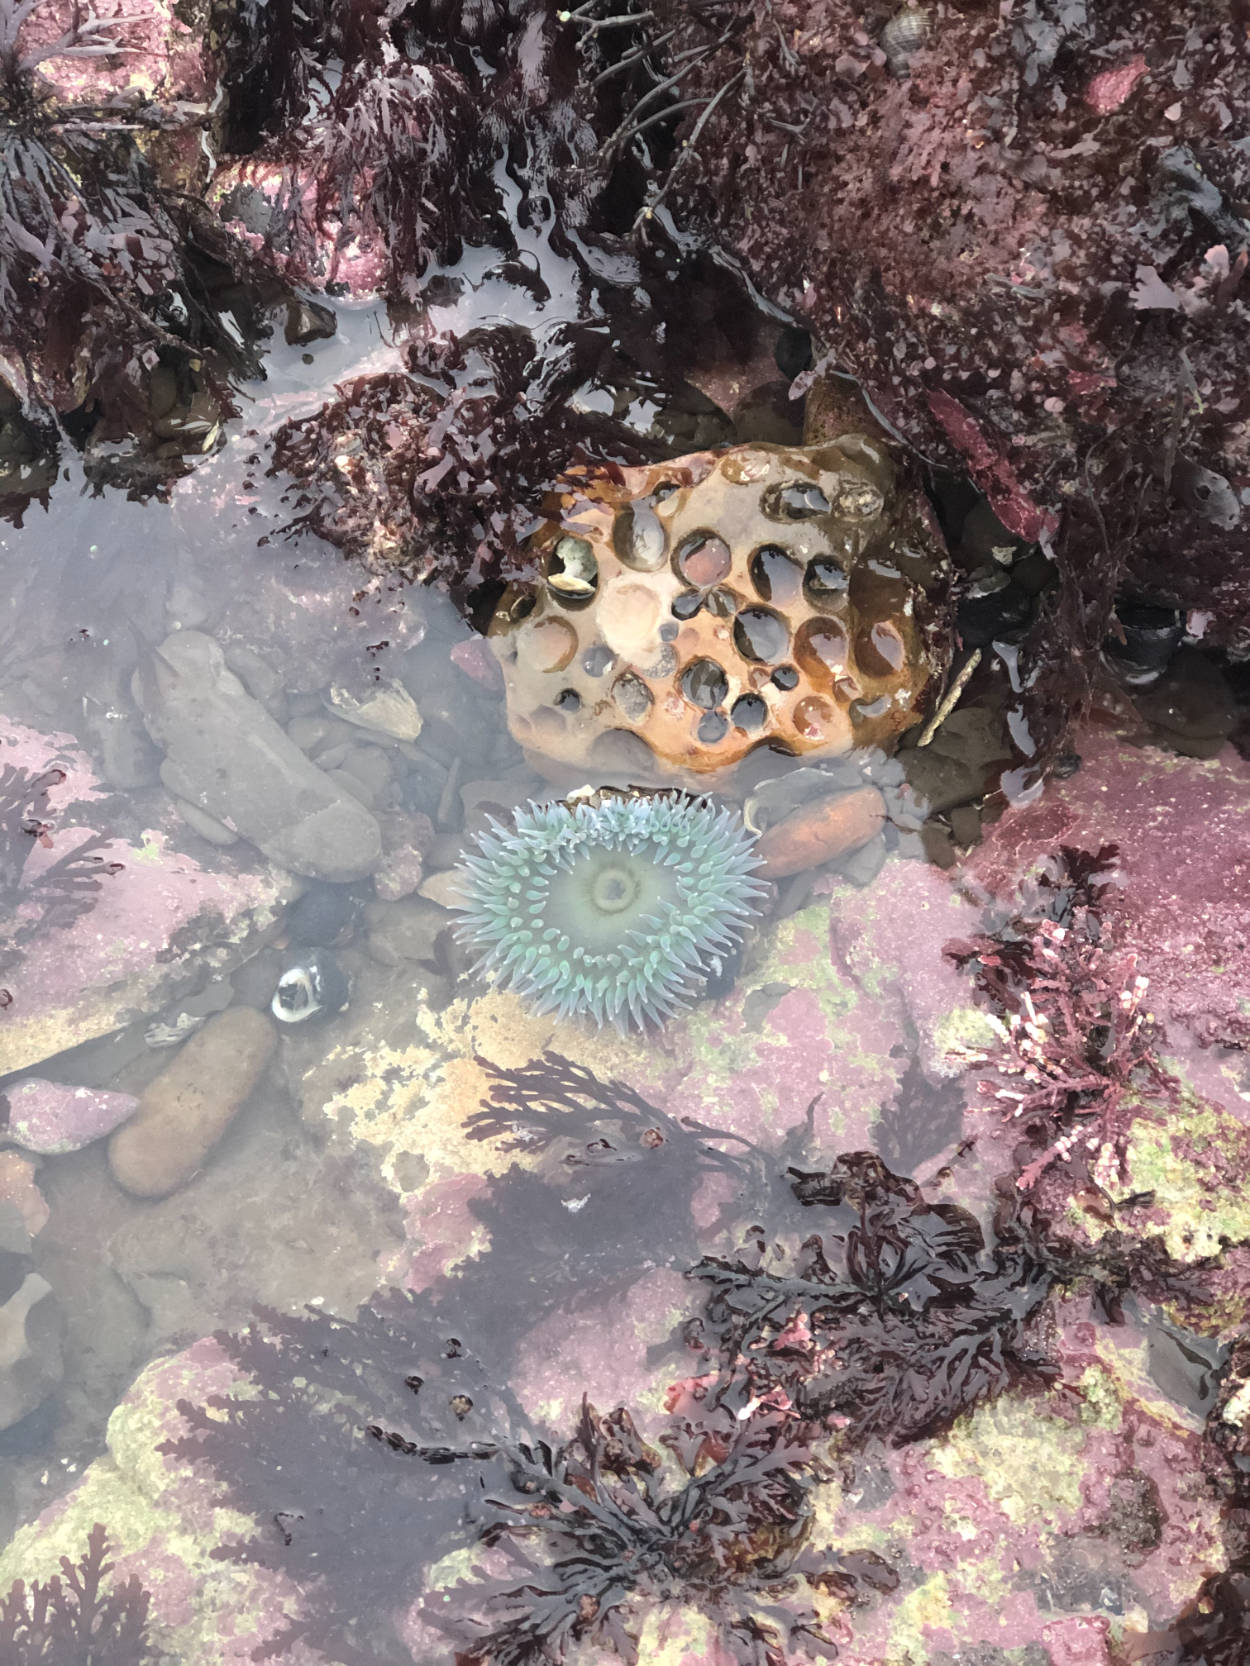 A tide pool at Agate Beach with an anemone